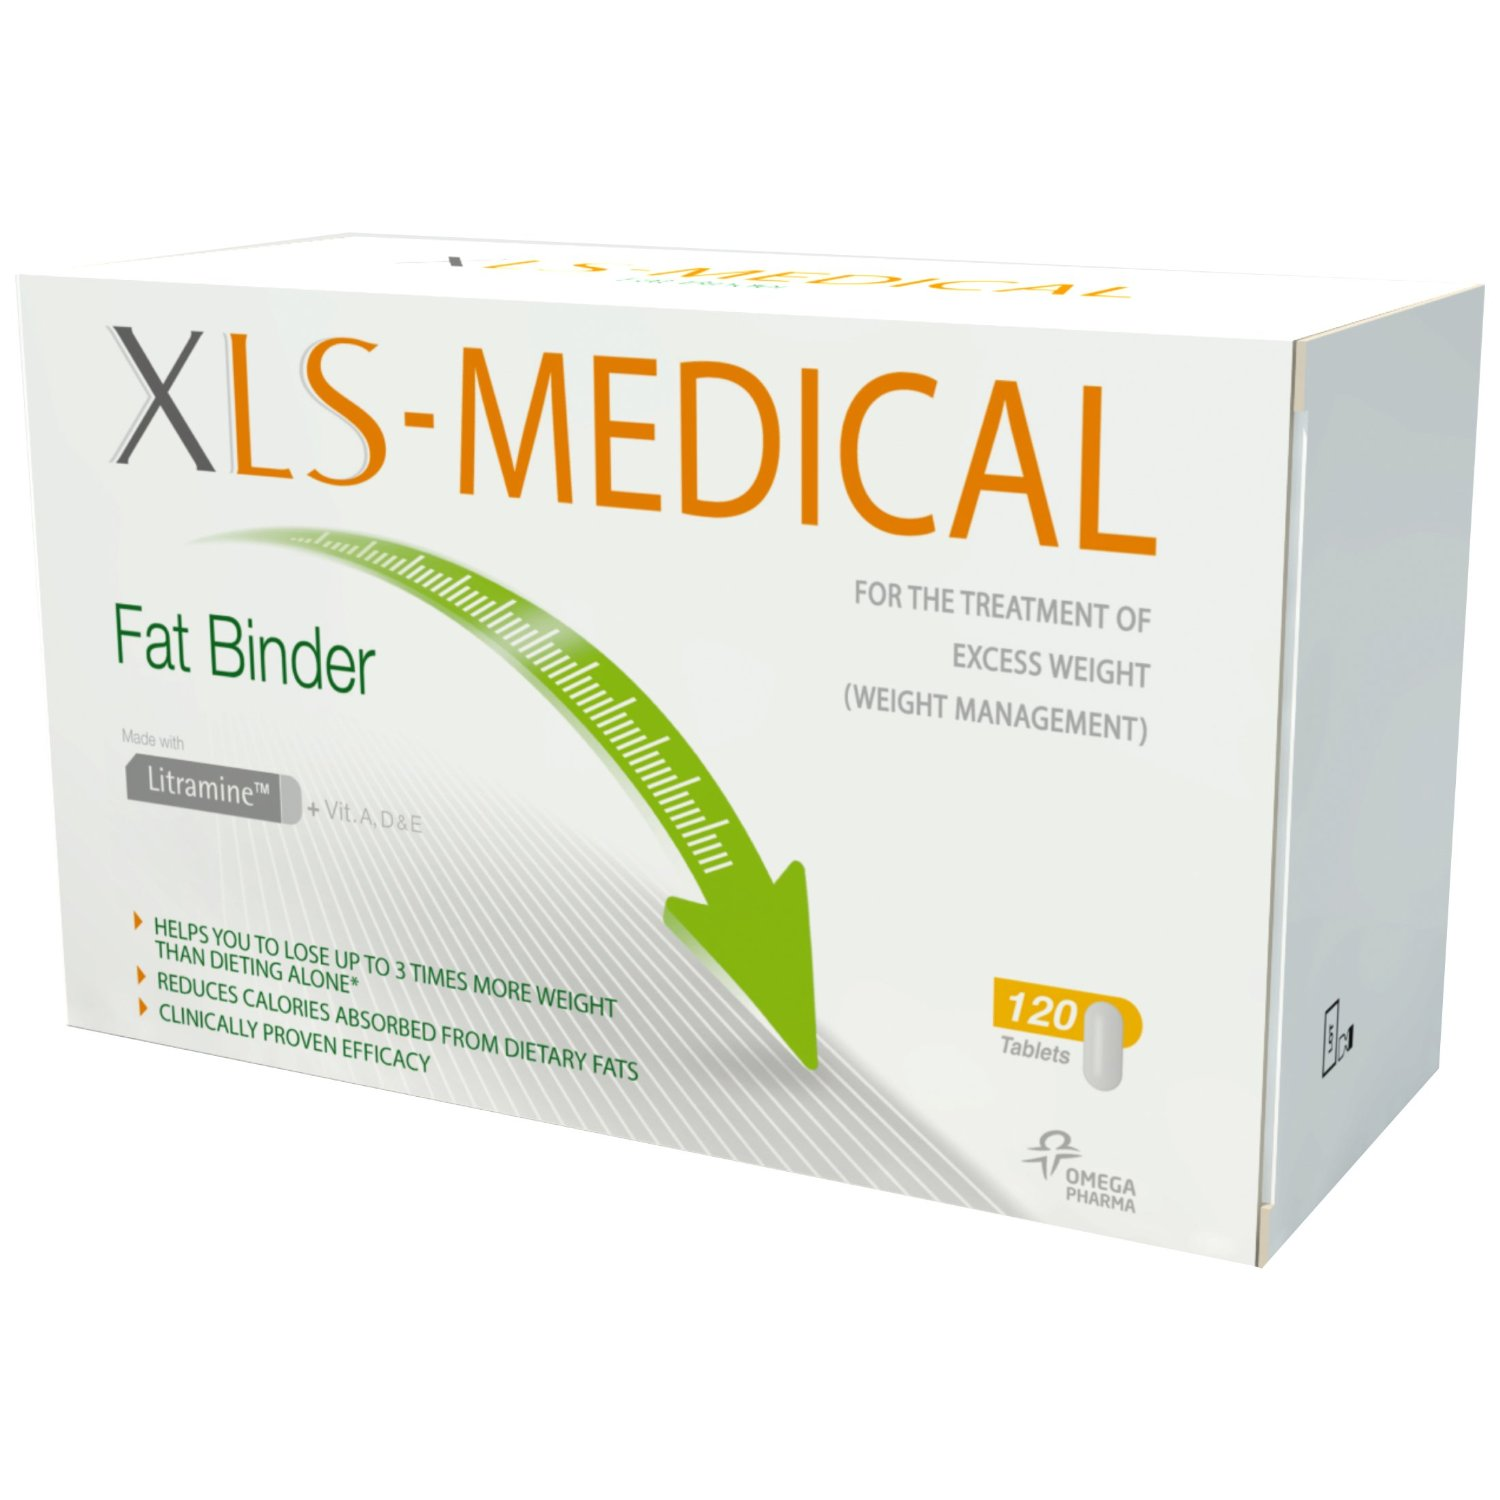 http://www.pillboxchemists.com/wp-content/uploads/2013/04/Xls-medical-fat-binder-60.jpg